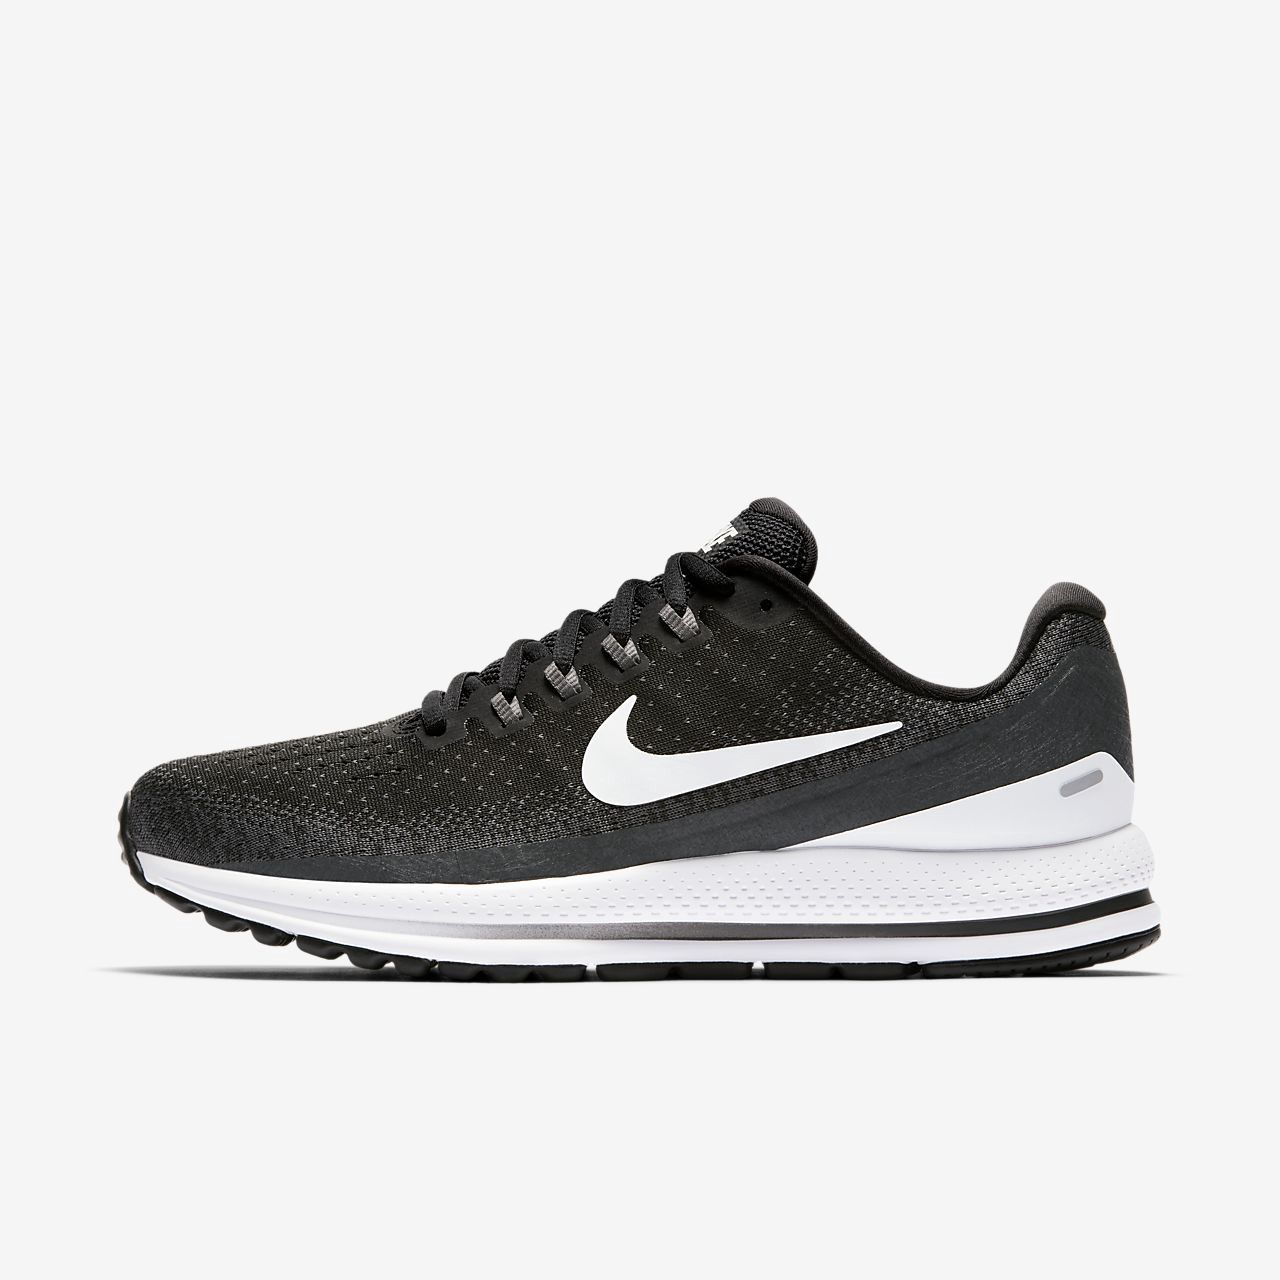 10+ Marvelous White Shoe Ideas | Nike free shoes, Running